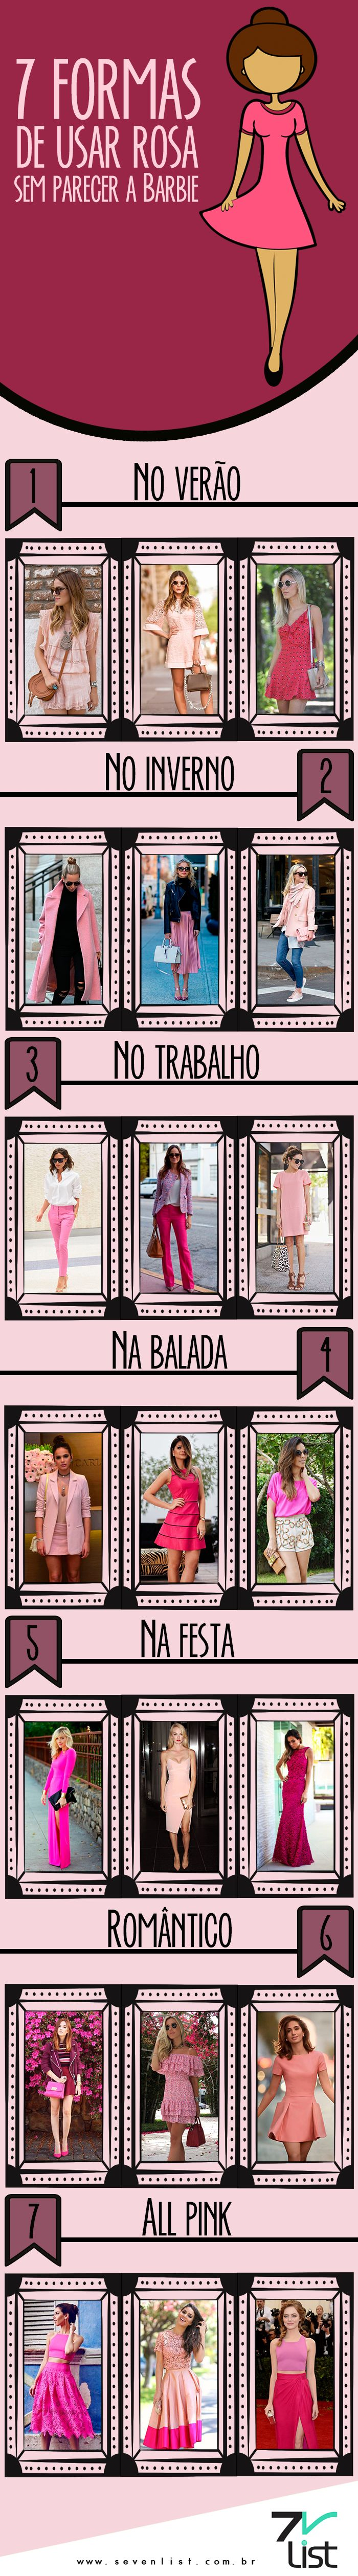 #Moda #Fashion #Pink #Rosa #SevenList #OutubroRosa #SevenList #Art #Design #Look #Outfit